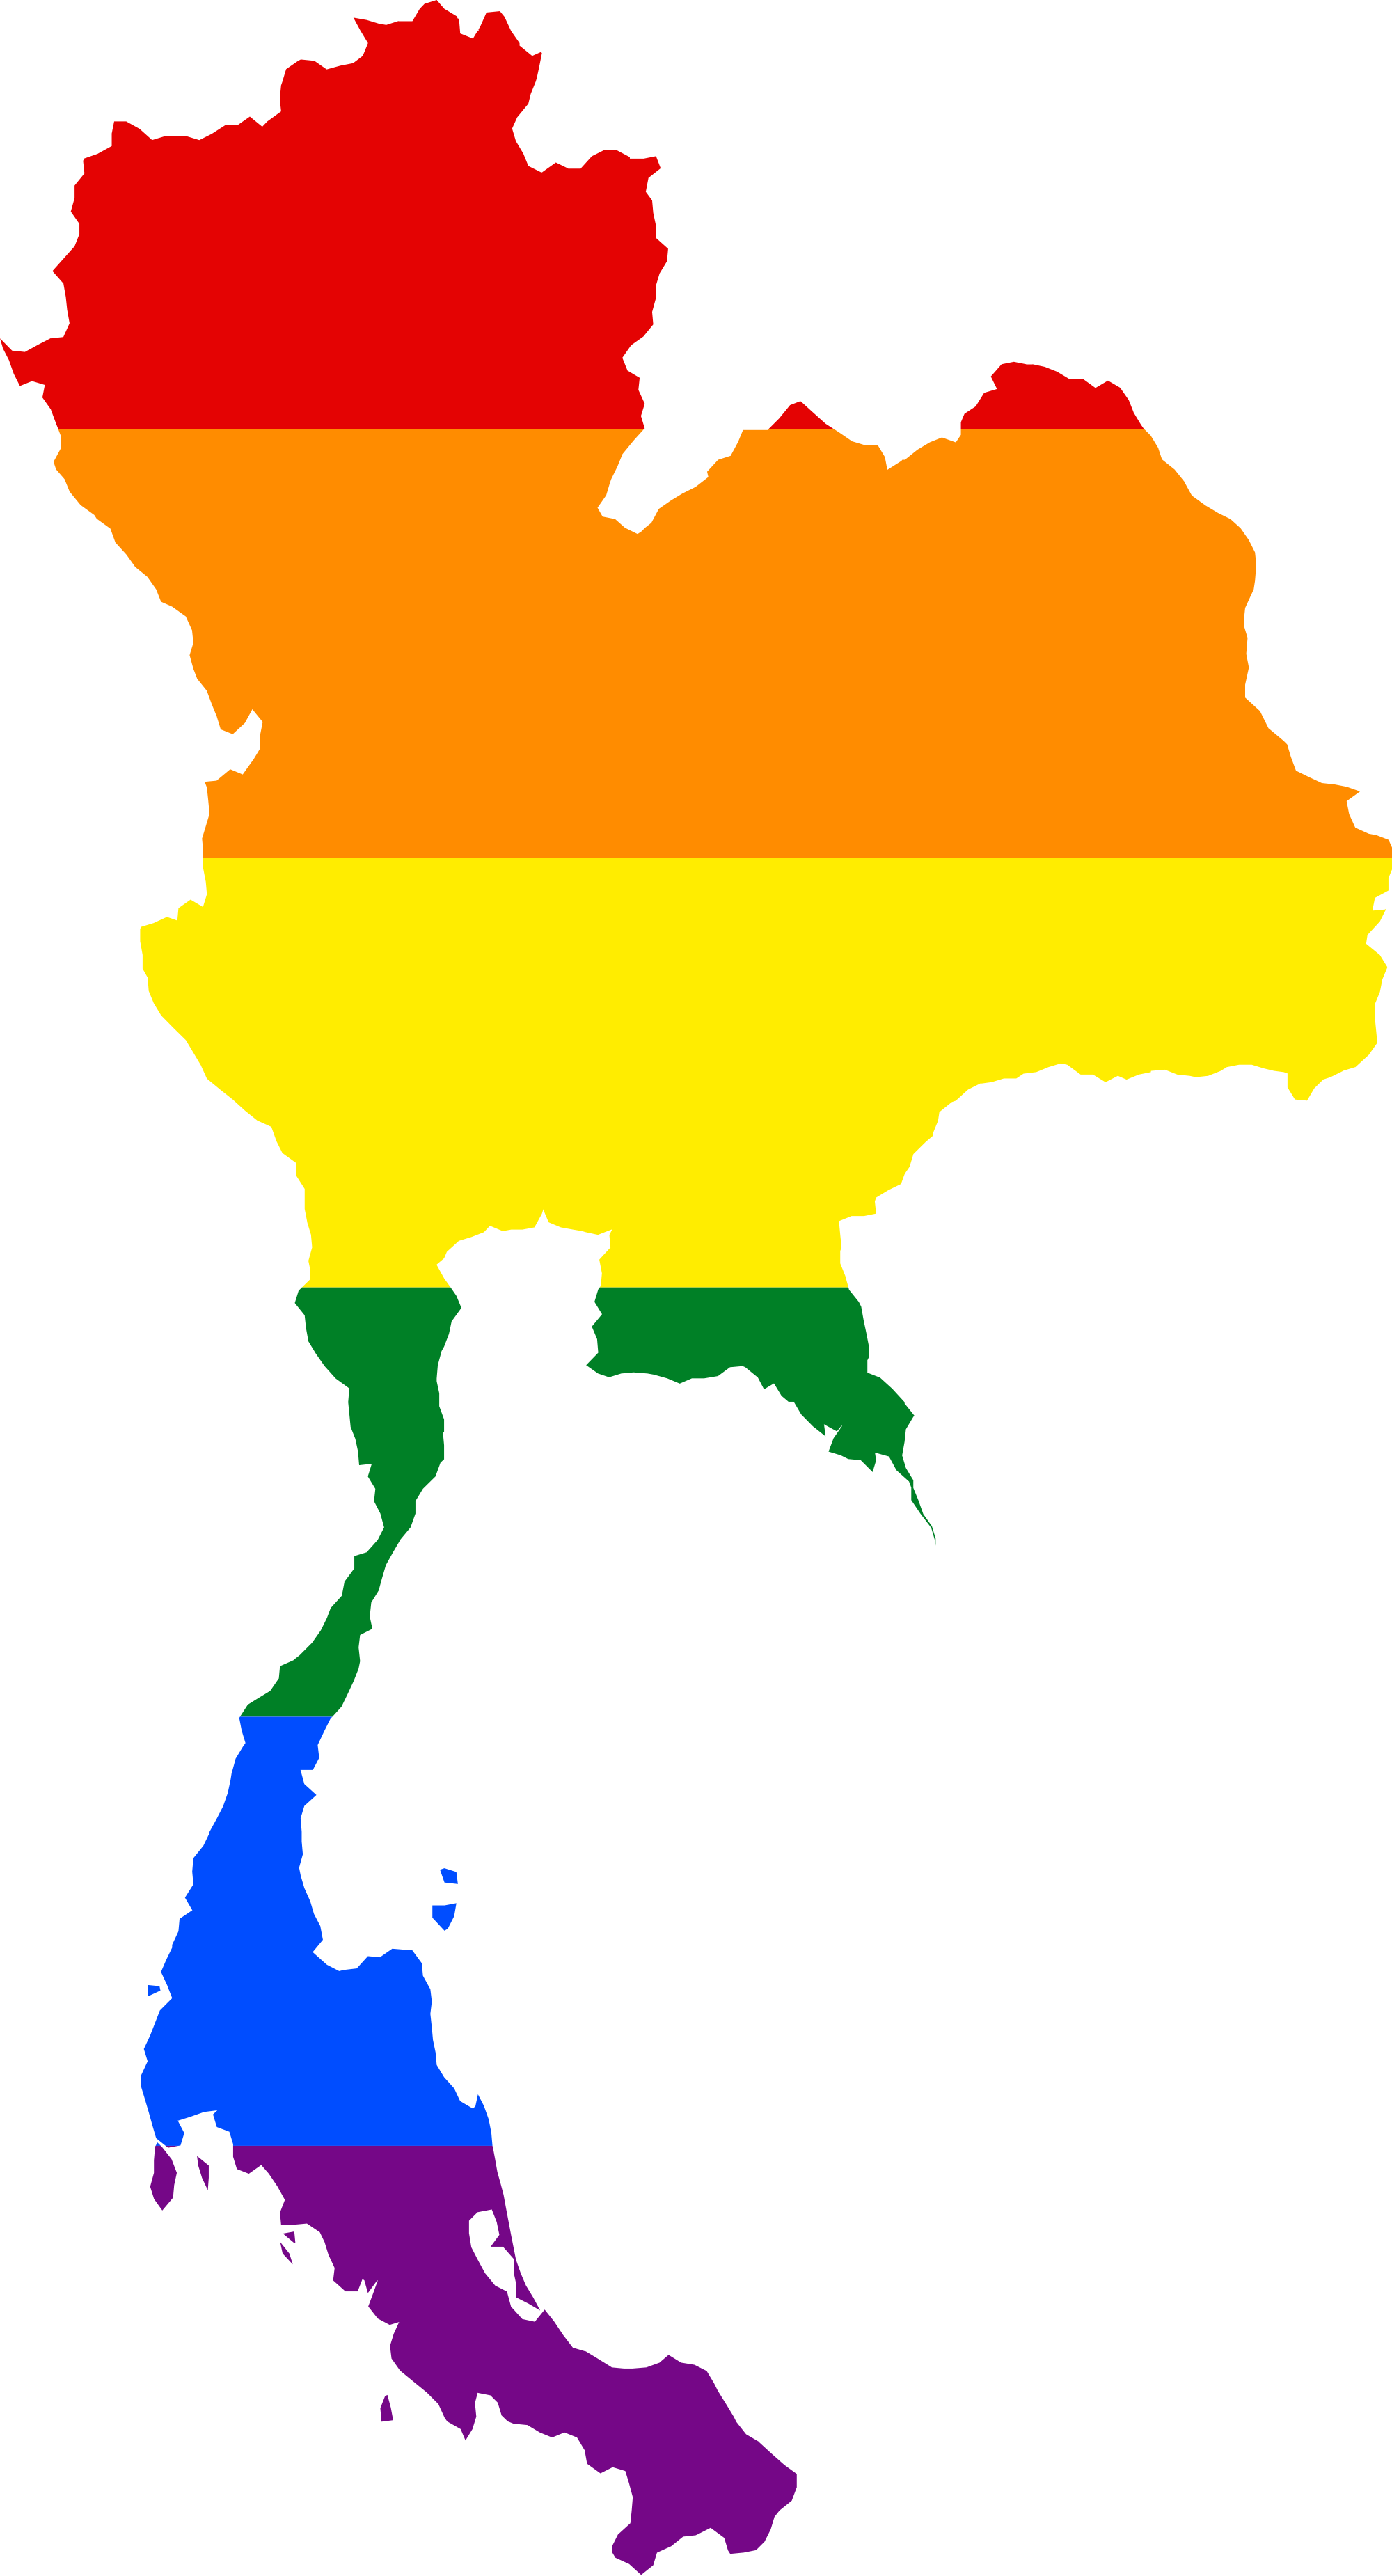 Thailand map png. File lgbt flag of